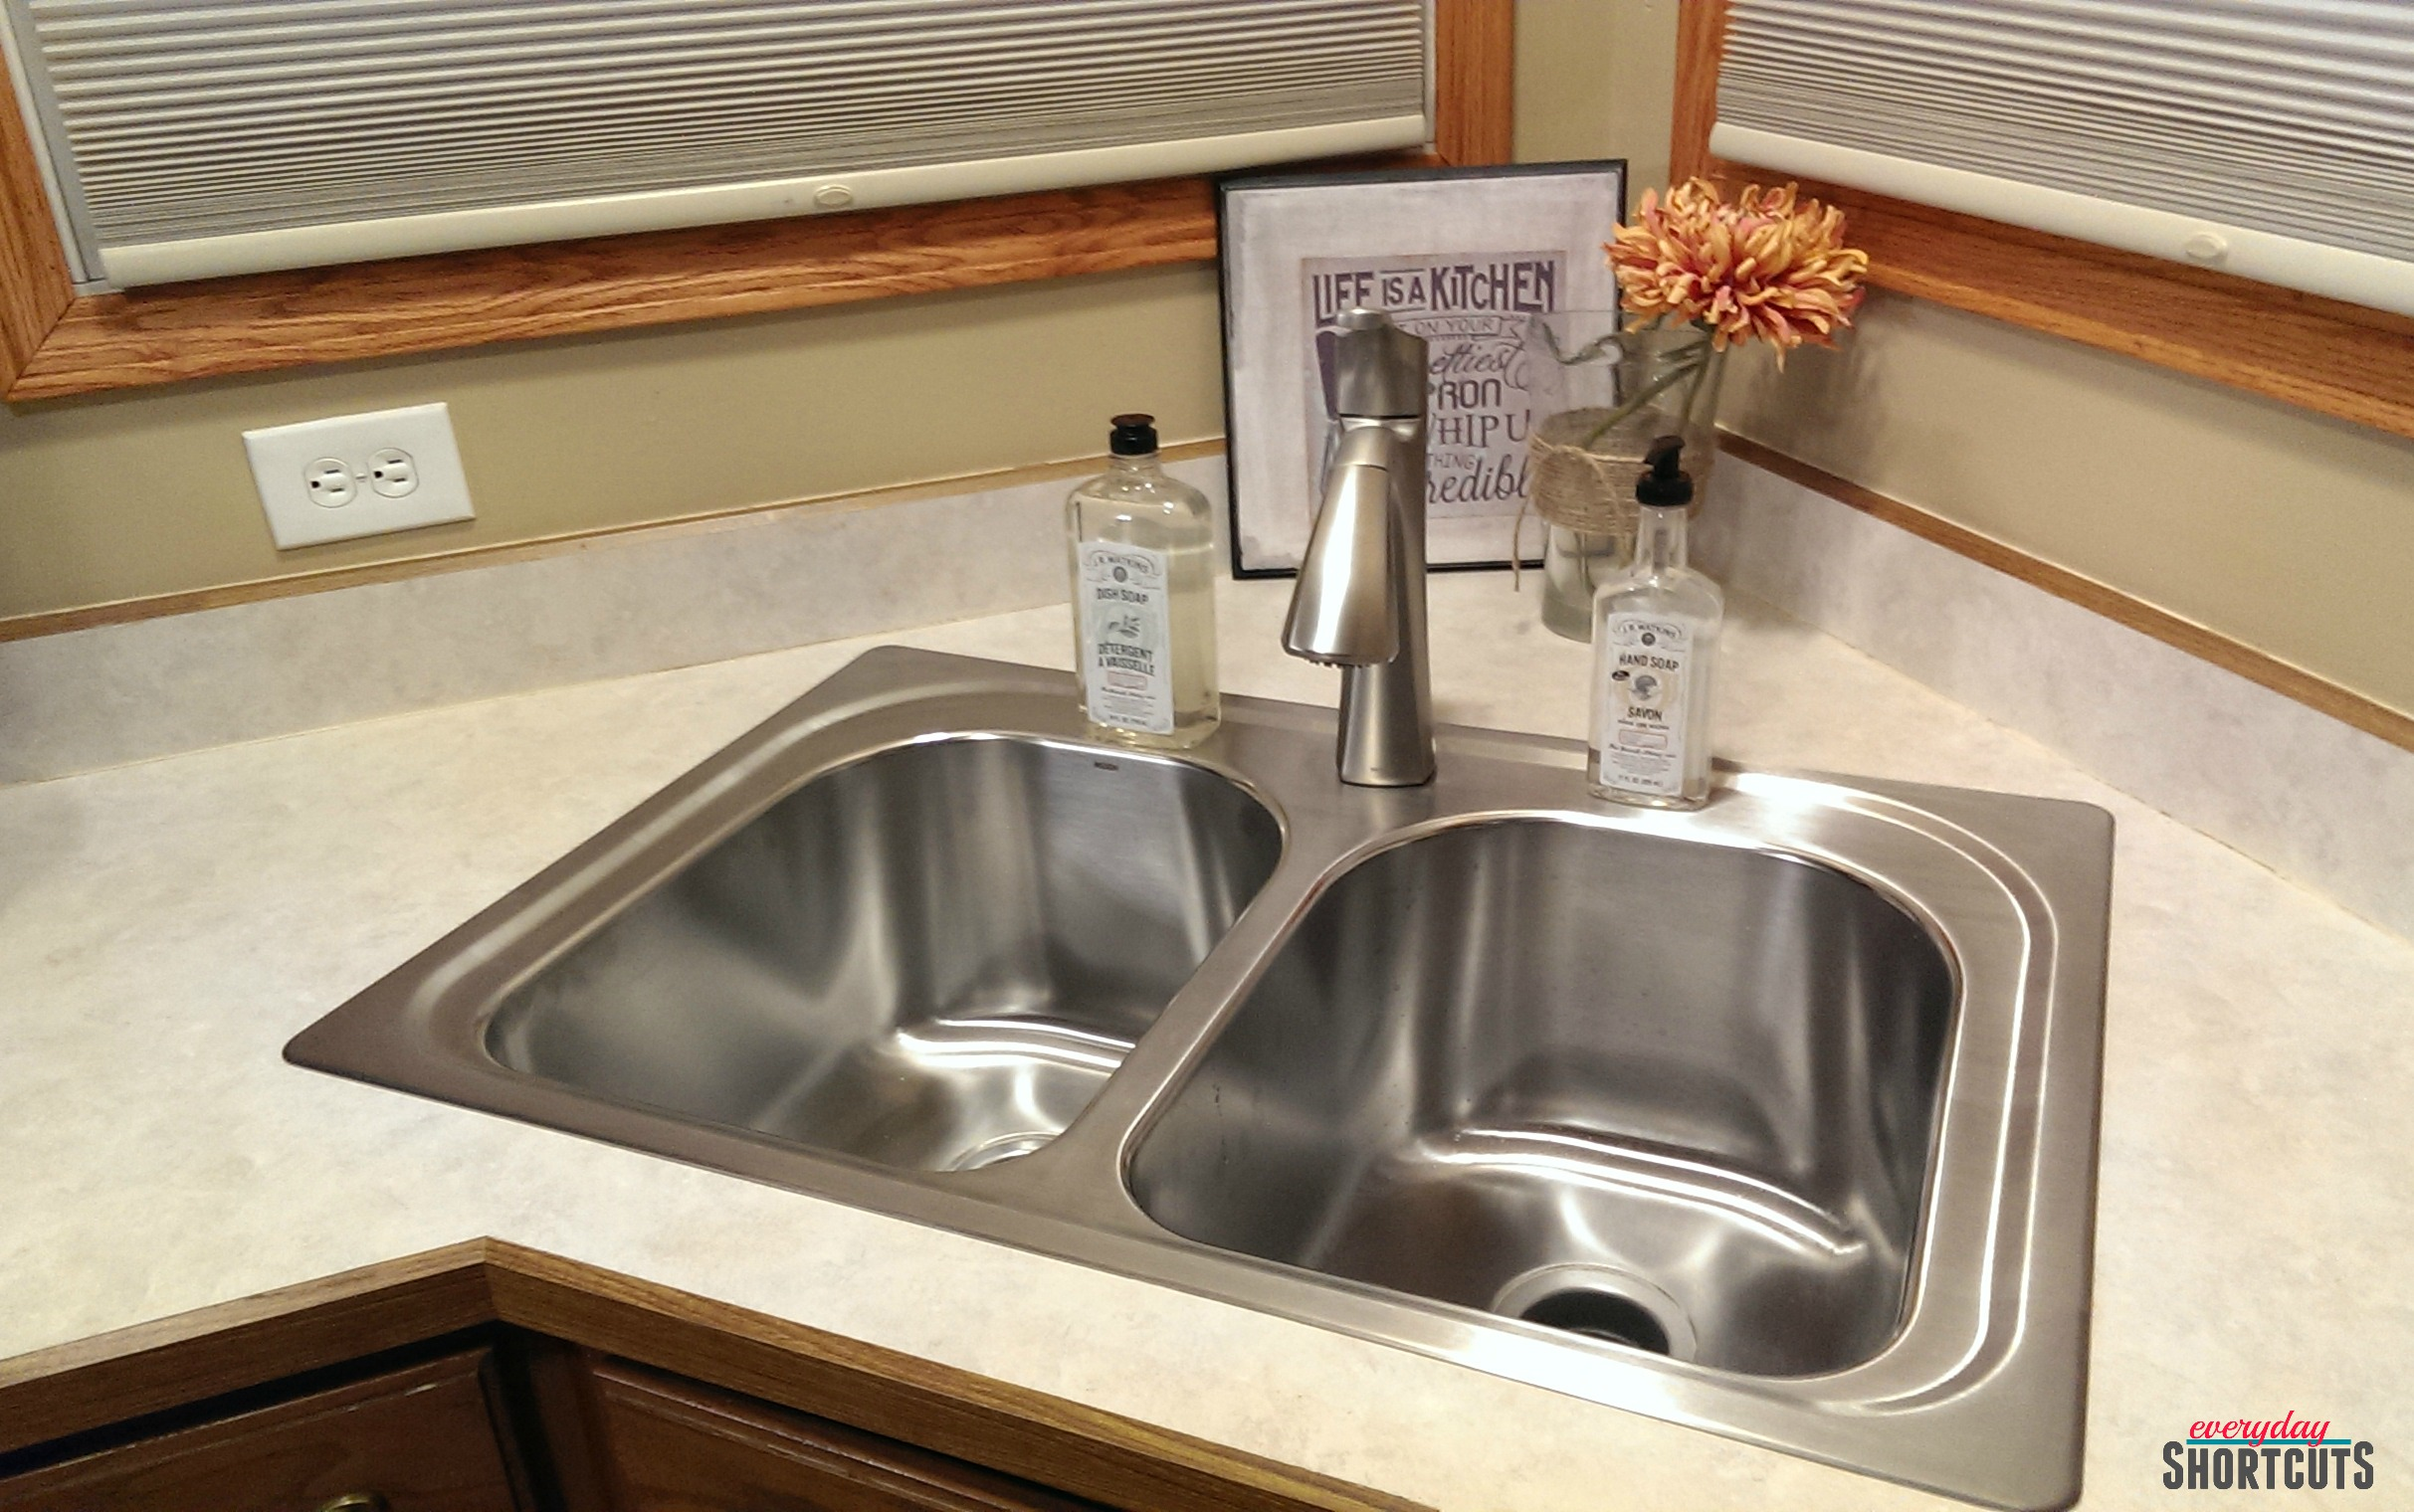 DIY Moen Kitchen Sink & Faucet Install Everyday Shortcuts